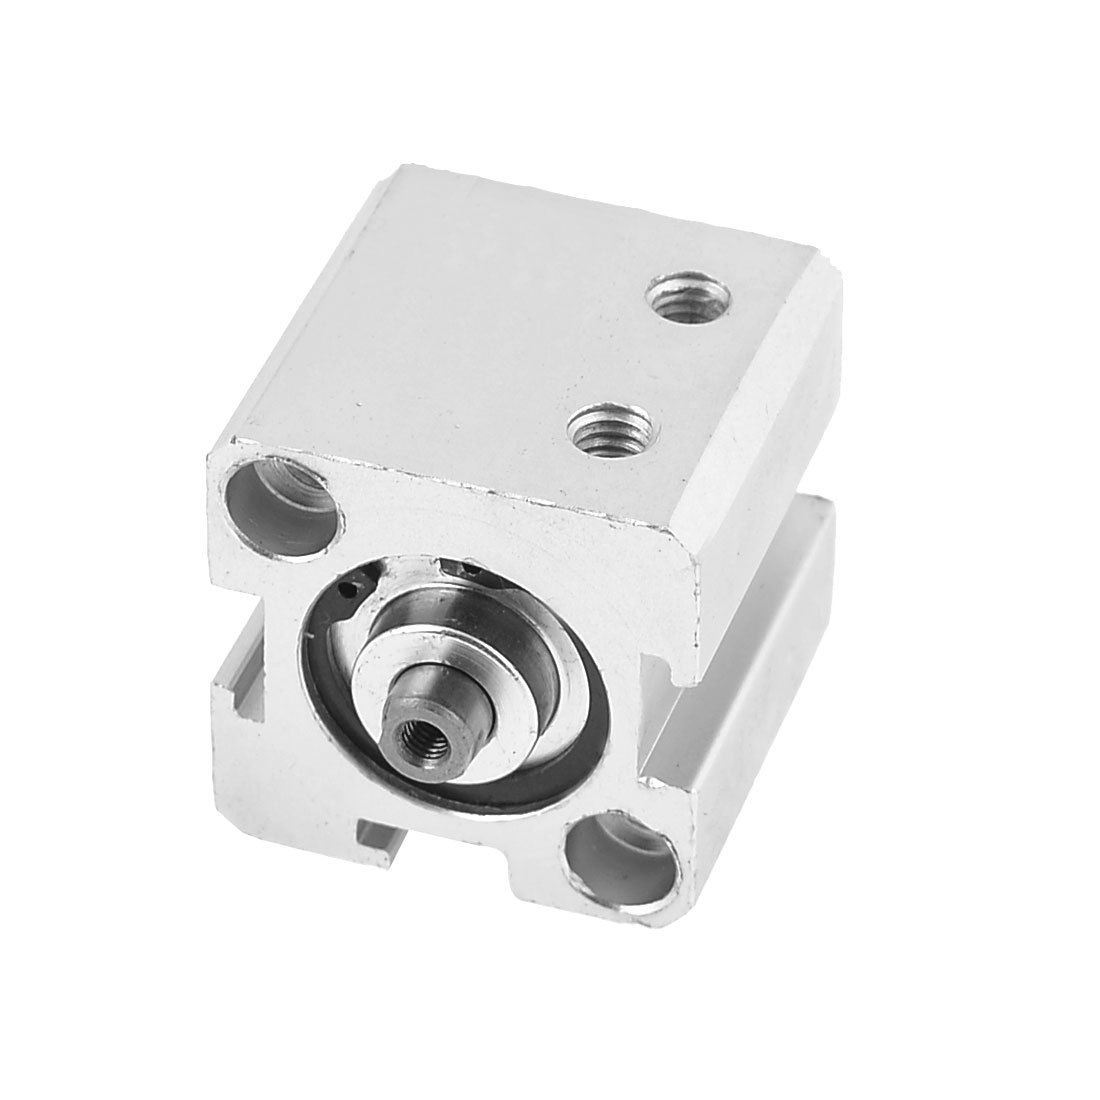 1 Pcs 20mm Bore 50mm Stroke Stainless steel Pneumatic Air Cylinder SDA20-50<br><br>Aliexpress